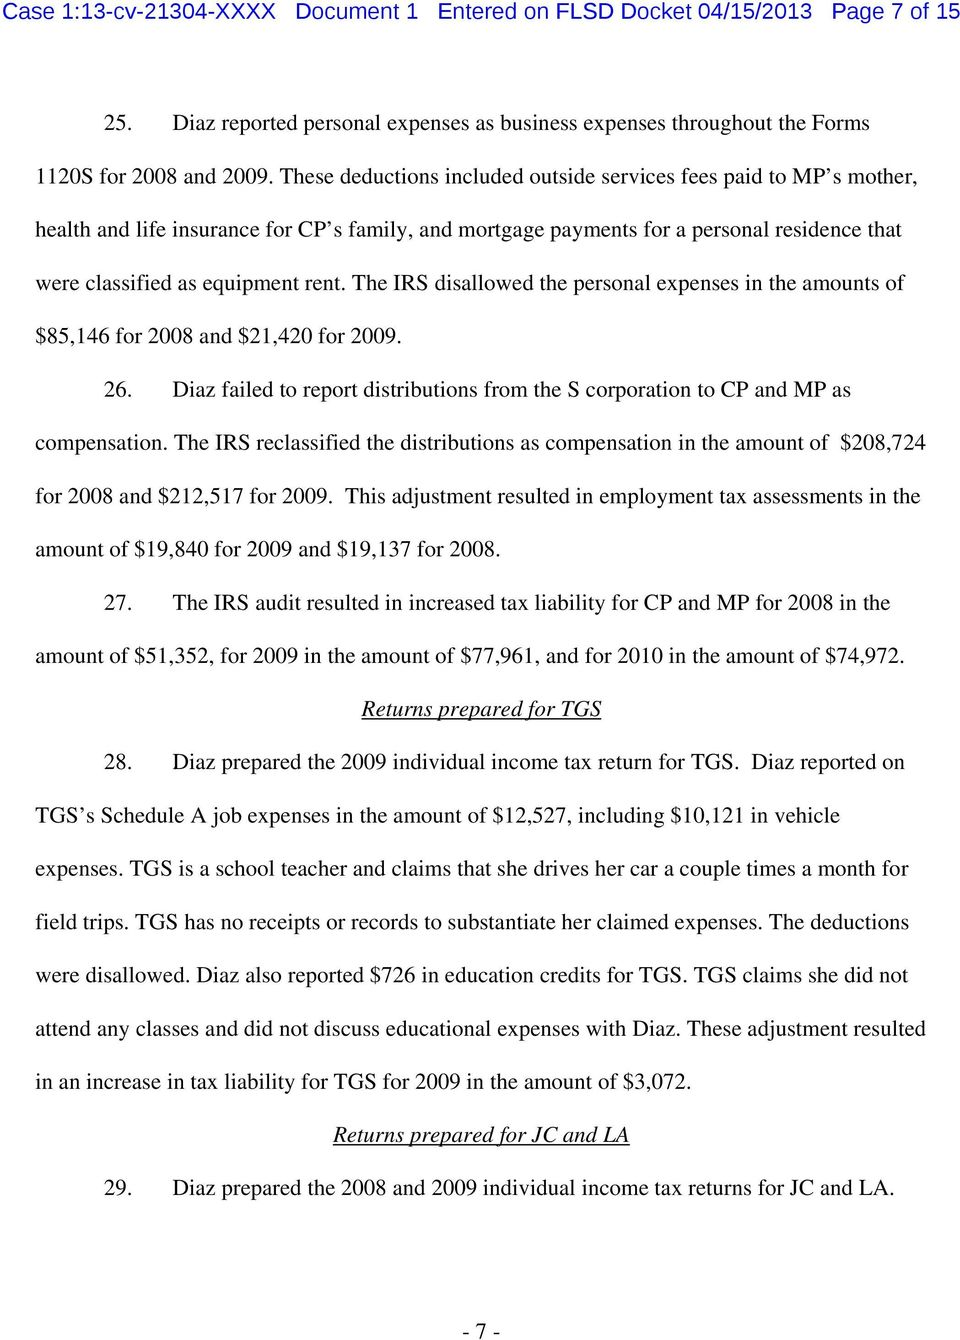 The IRS disallowed the personal expenses in the amounts of $85,146 for 2008 and $21,420 for 2009. 26. Diaz failed to report distributions from the S corporation to CP and MP as compensation.